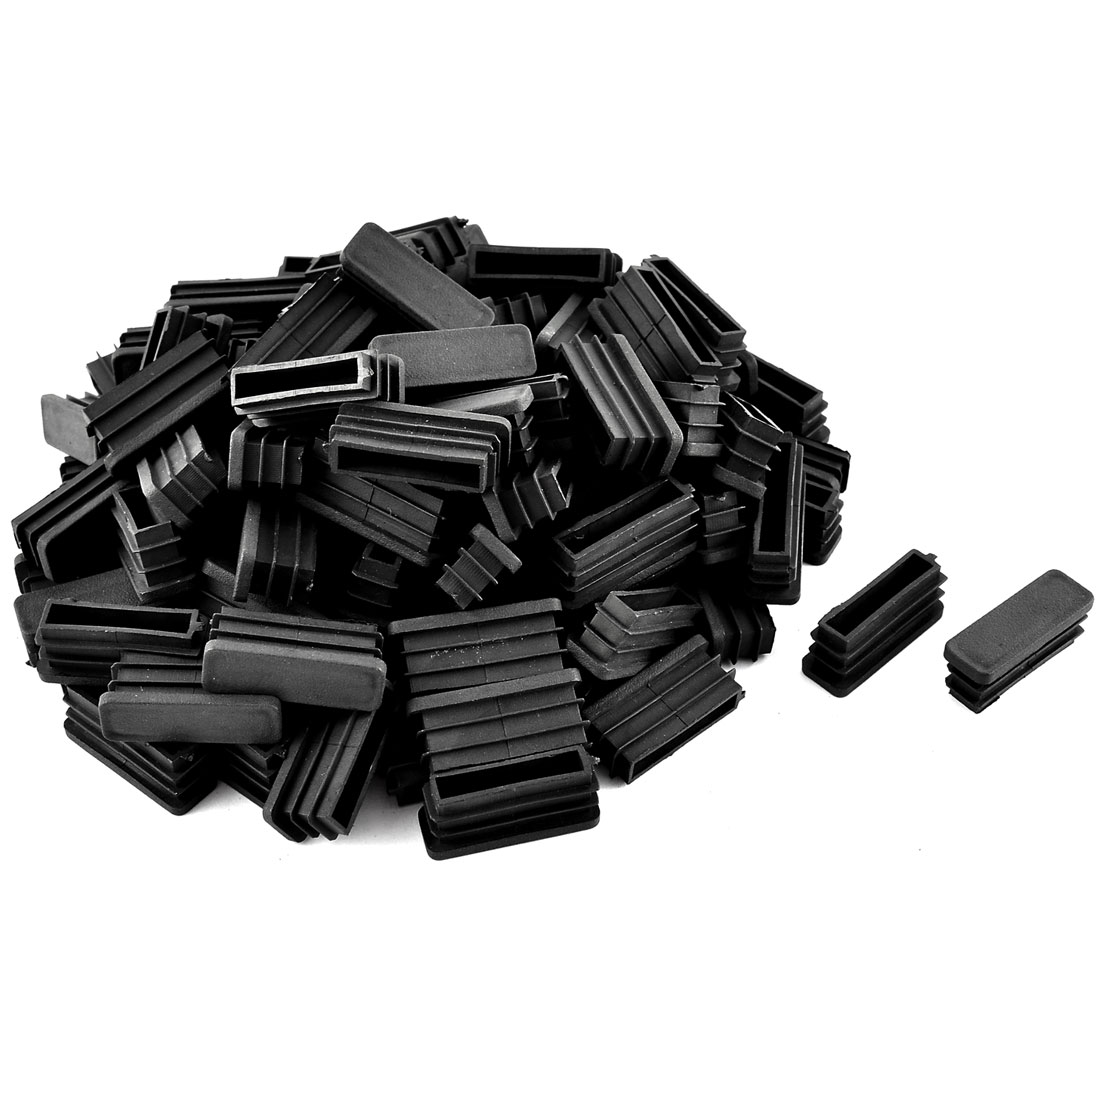 Home Office Plastic Rectangular Shaped Table Chair Leg Feet Tube Pipe Insert Black 100 Pcs